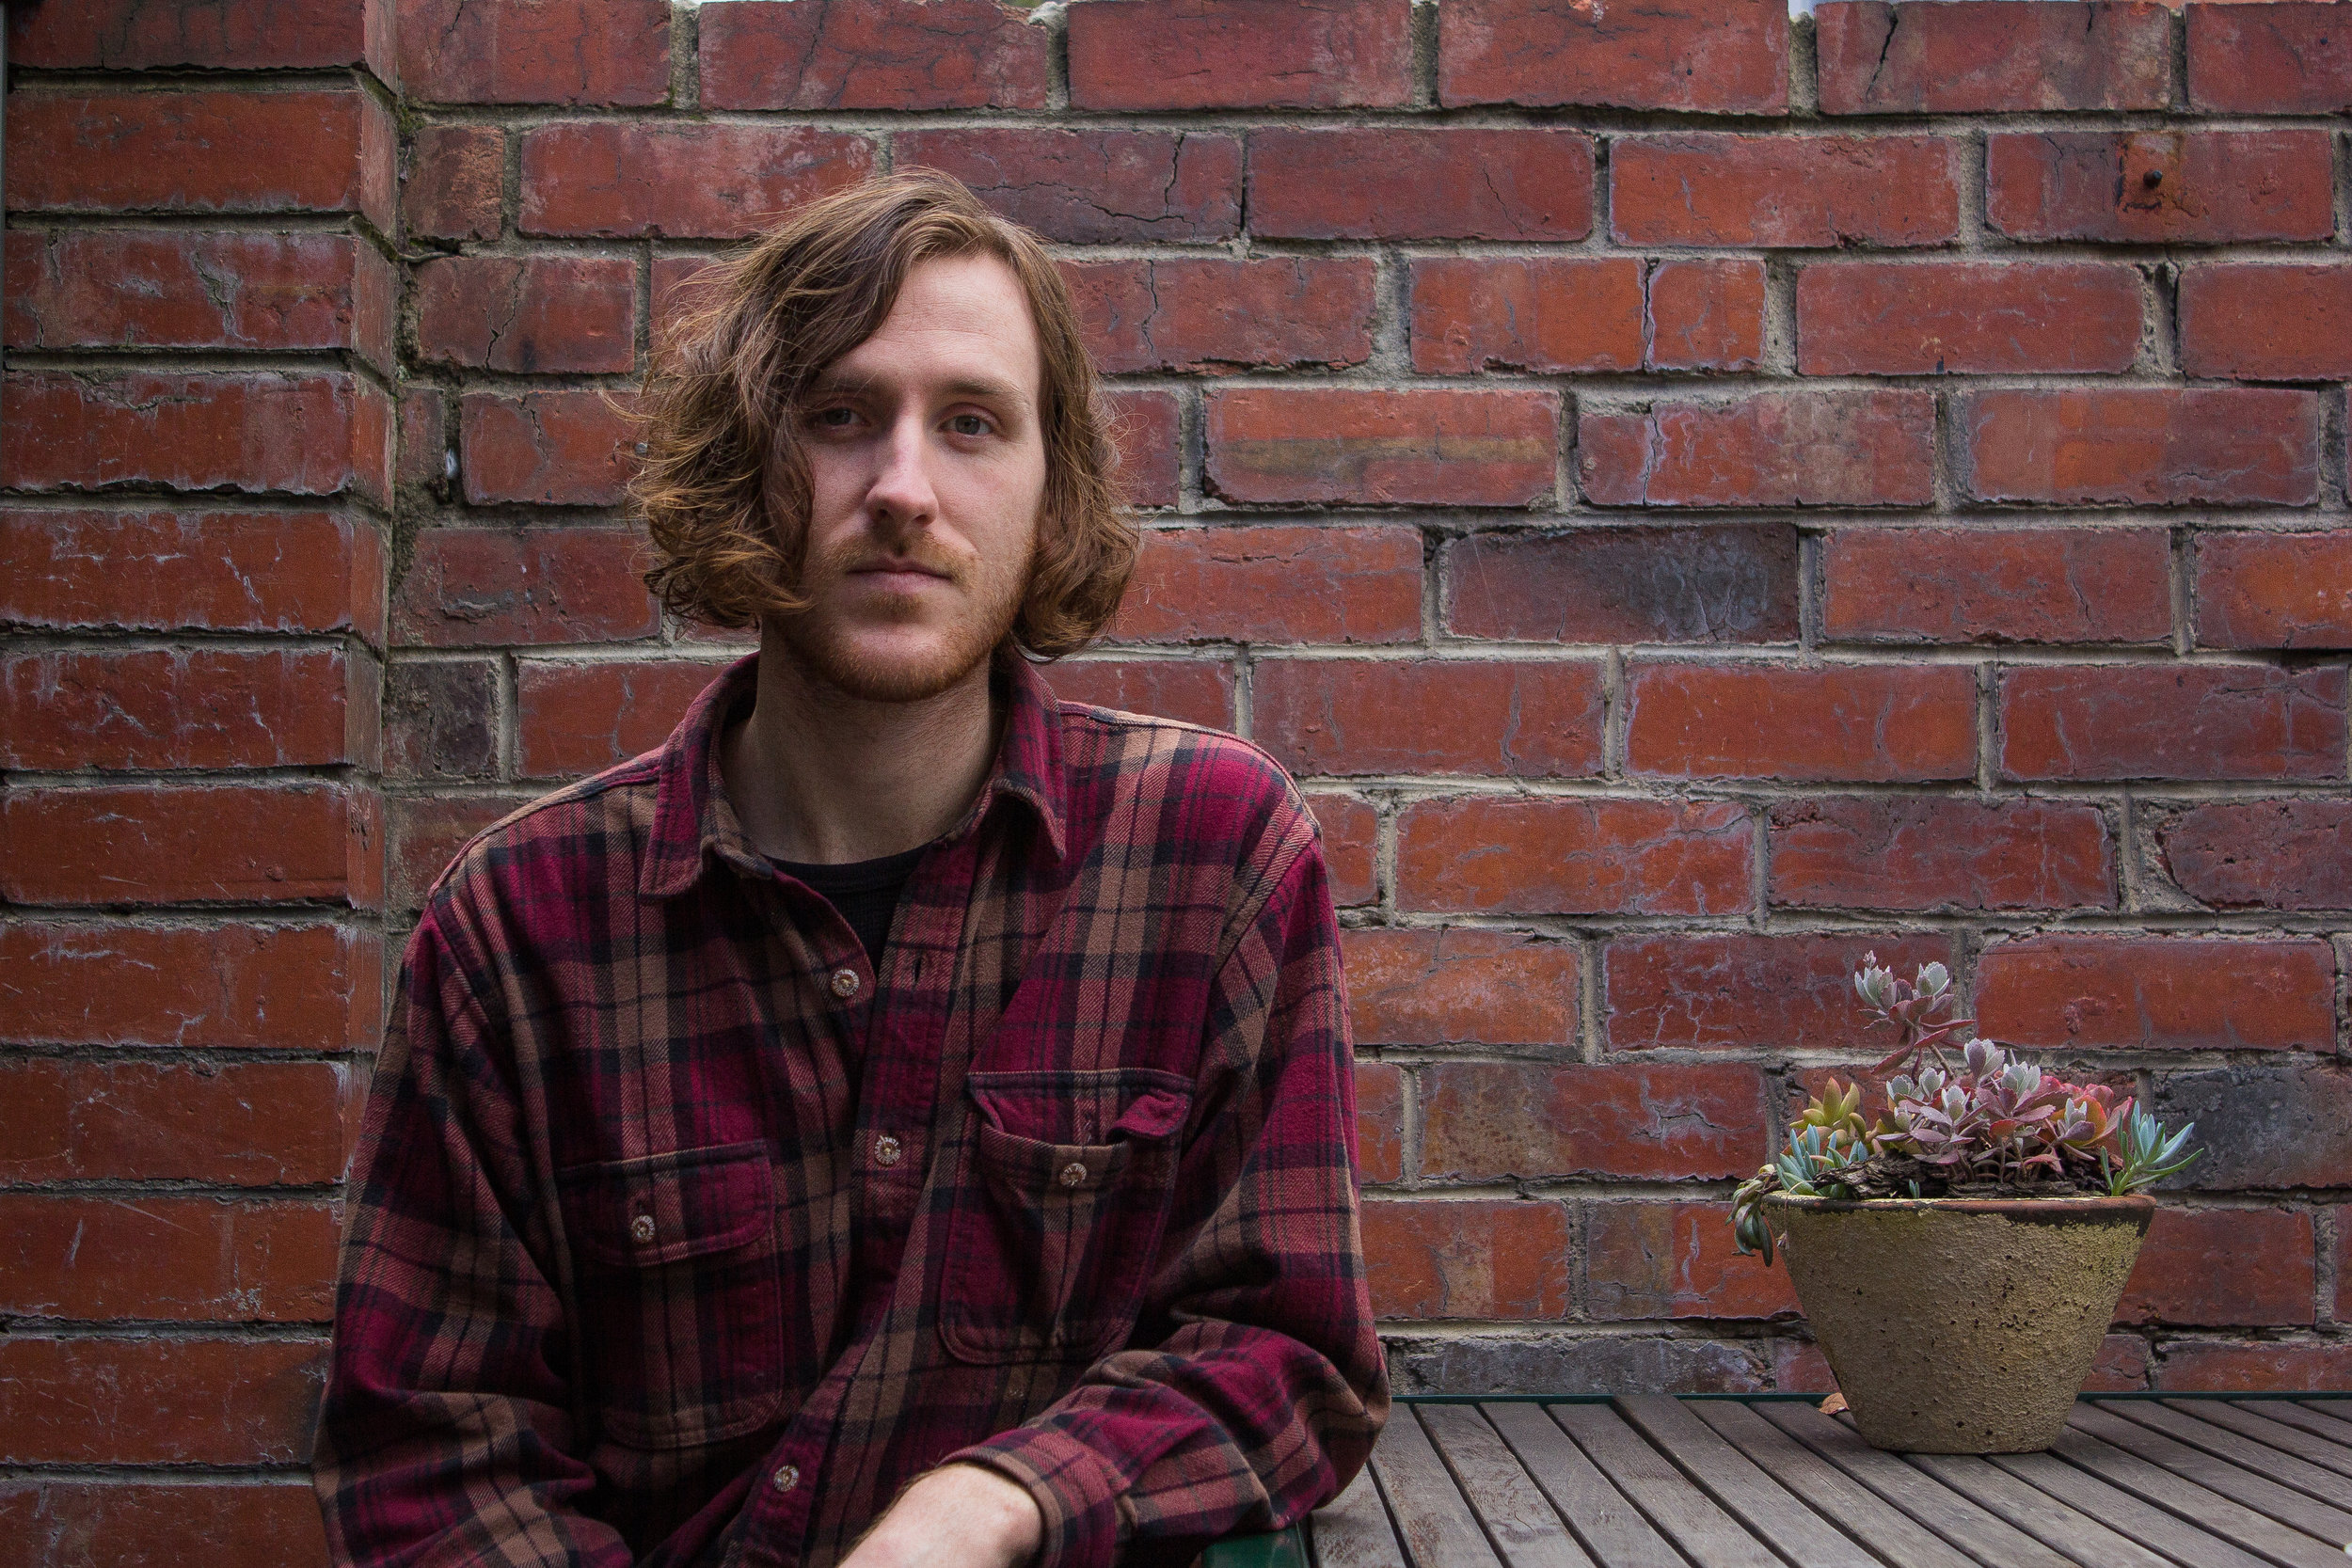 We caught up for a cuppa coffee with Alexander Biggs ahead of the release of his debut EP 'Still You Sharpen Your Teeth' (out today 15th). The Melbourne indie-folk producer has only gone from strength to strength, scoring some huge support slots as well as touring his own live show. With a bunch of dates coming up in support of the EP including a couple of showcases at BIGSOUND, we wanted to sit down and have a chat about all the Bigg(s) things